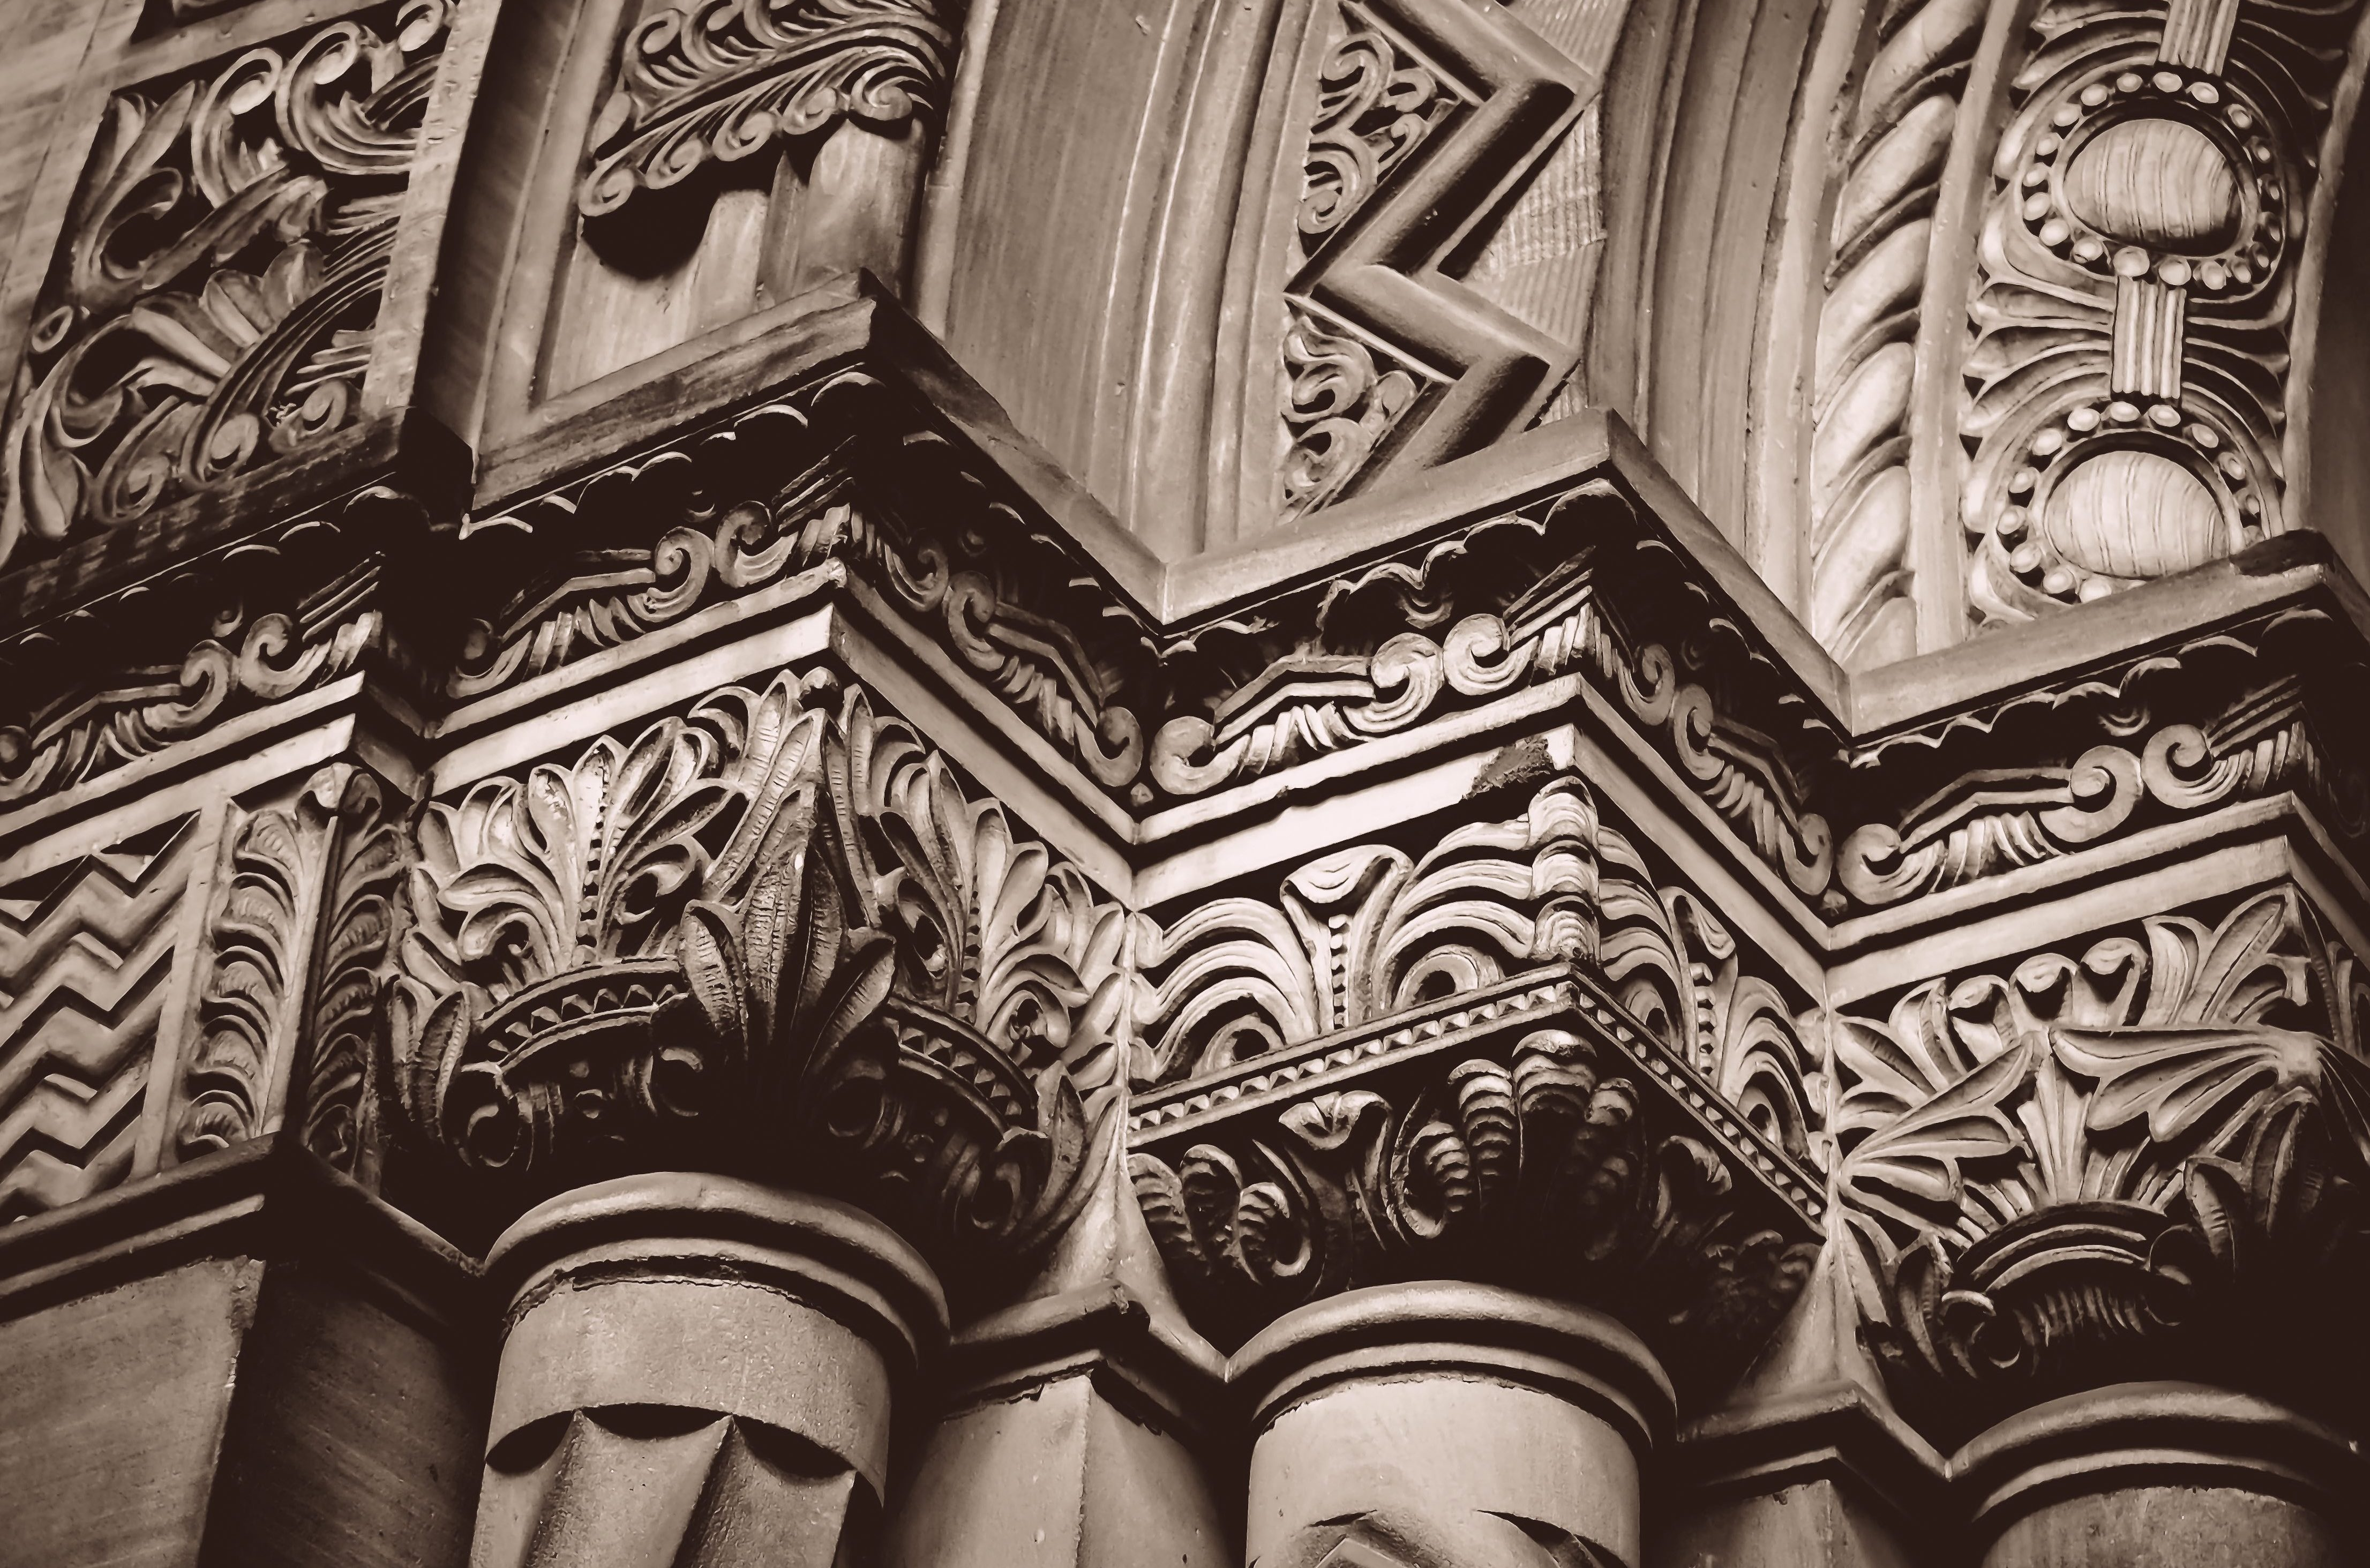 Close up of carved stonework on a doorway